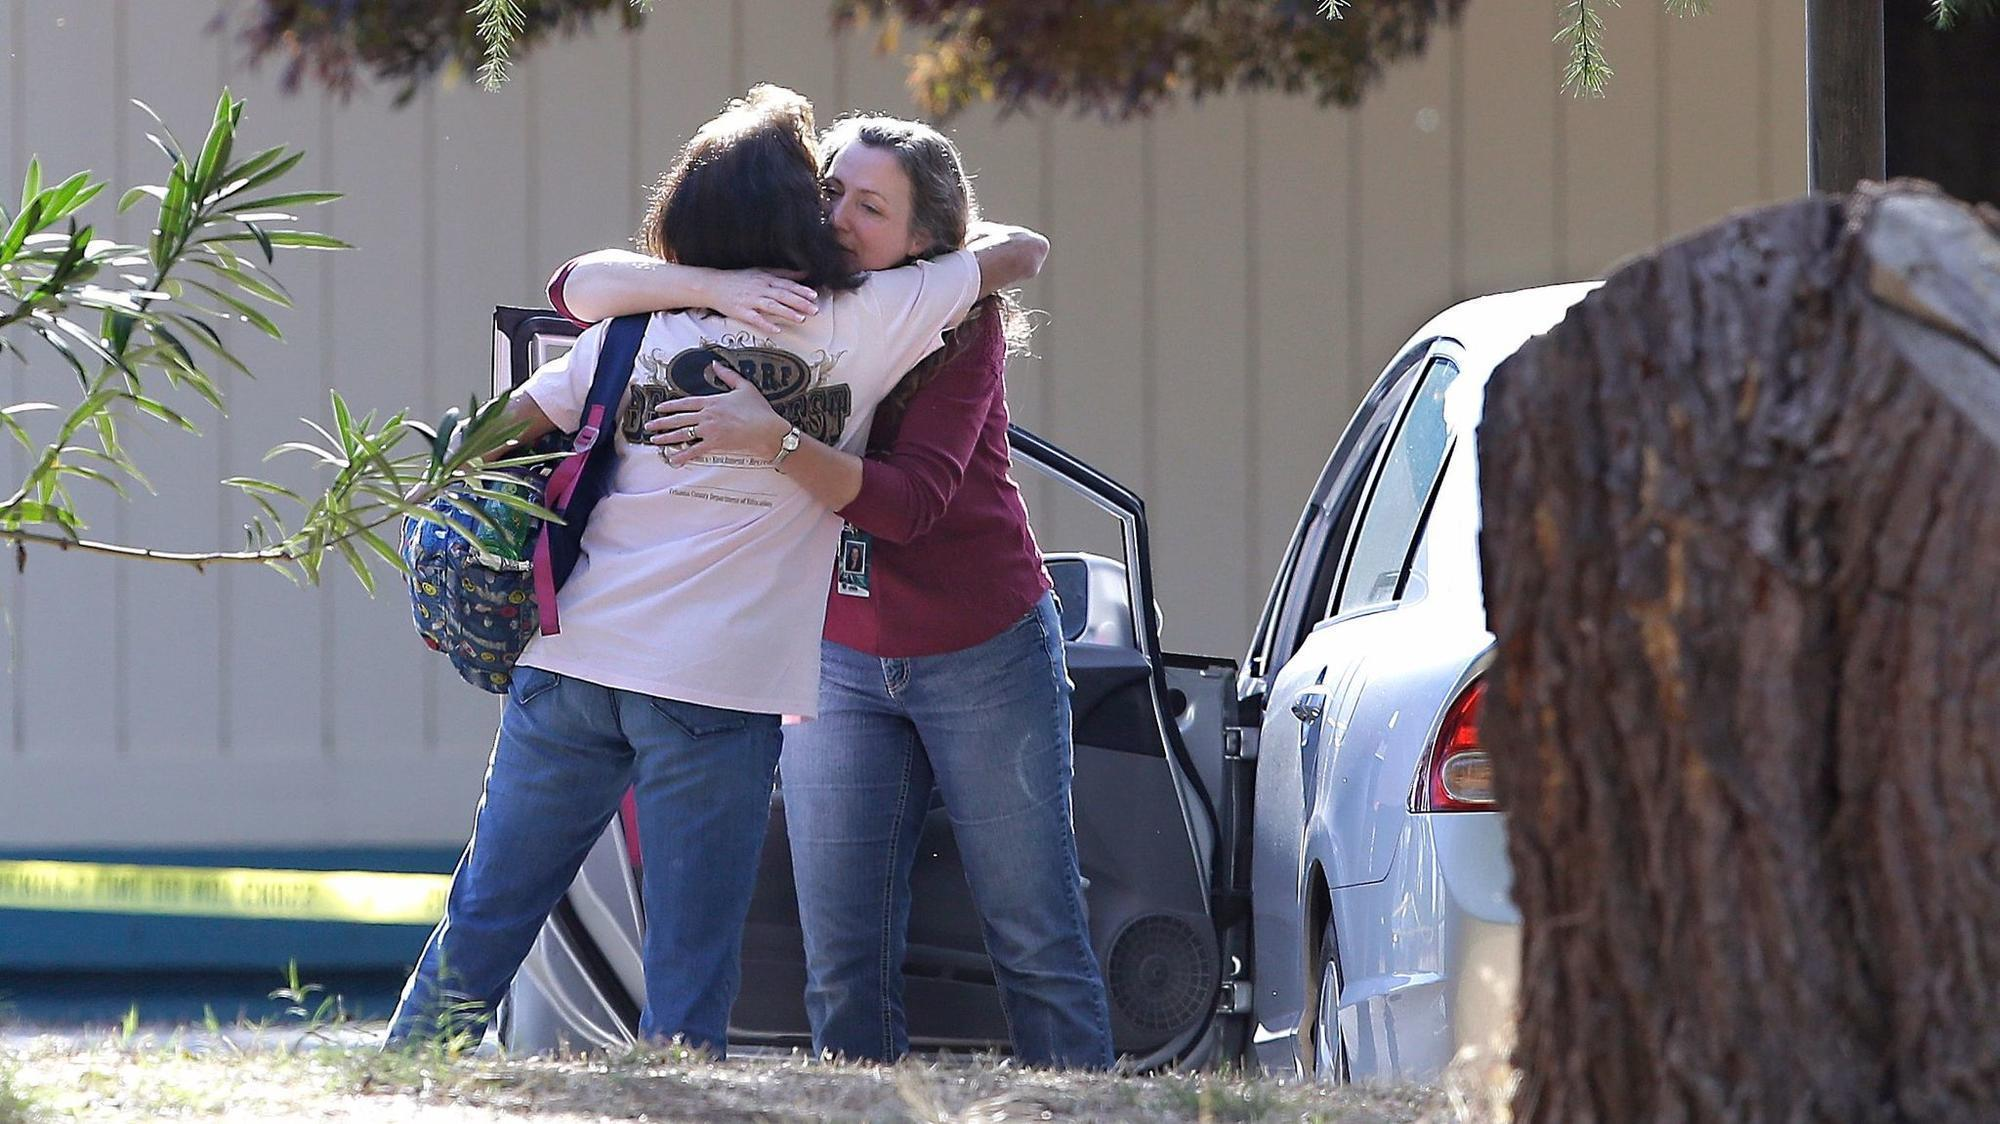 http://beta.latimes.com/local/lanow/la-me-ln-norcal-elementary-school-shooting-20171114-story.html